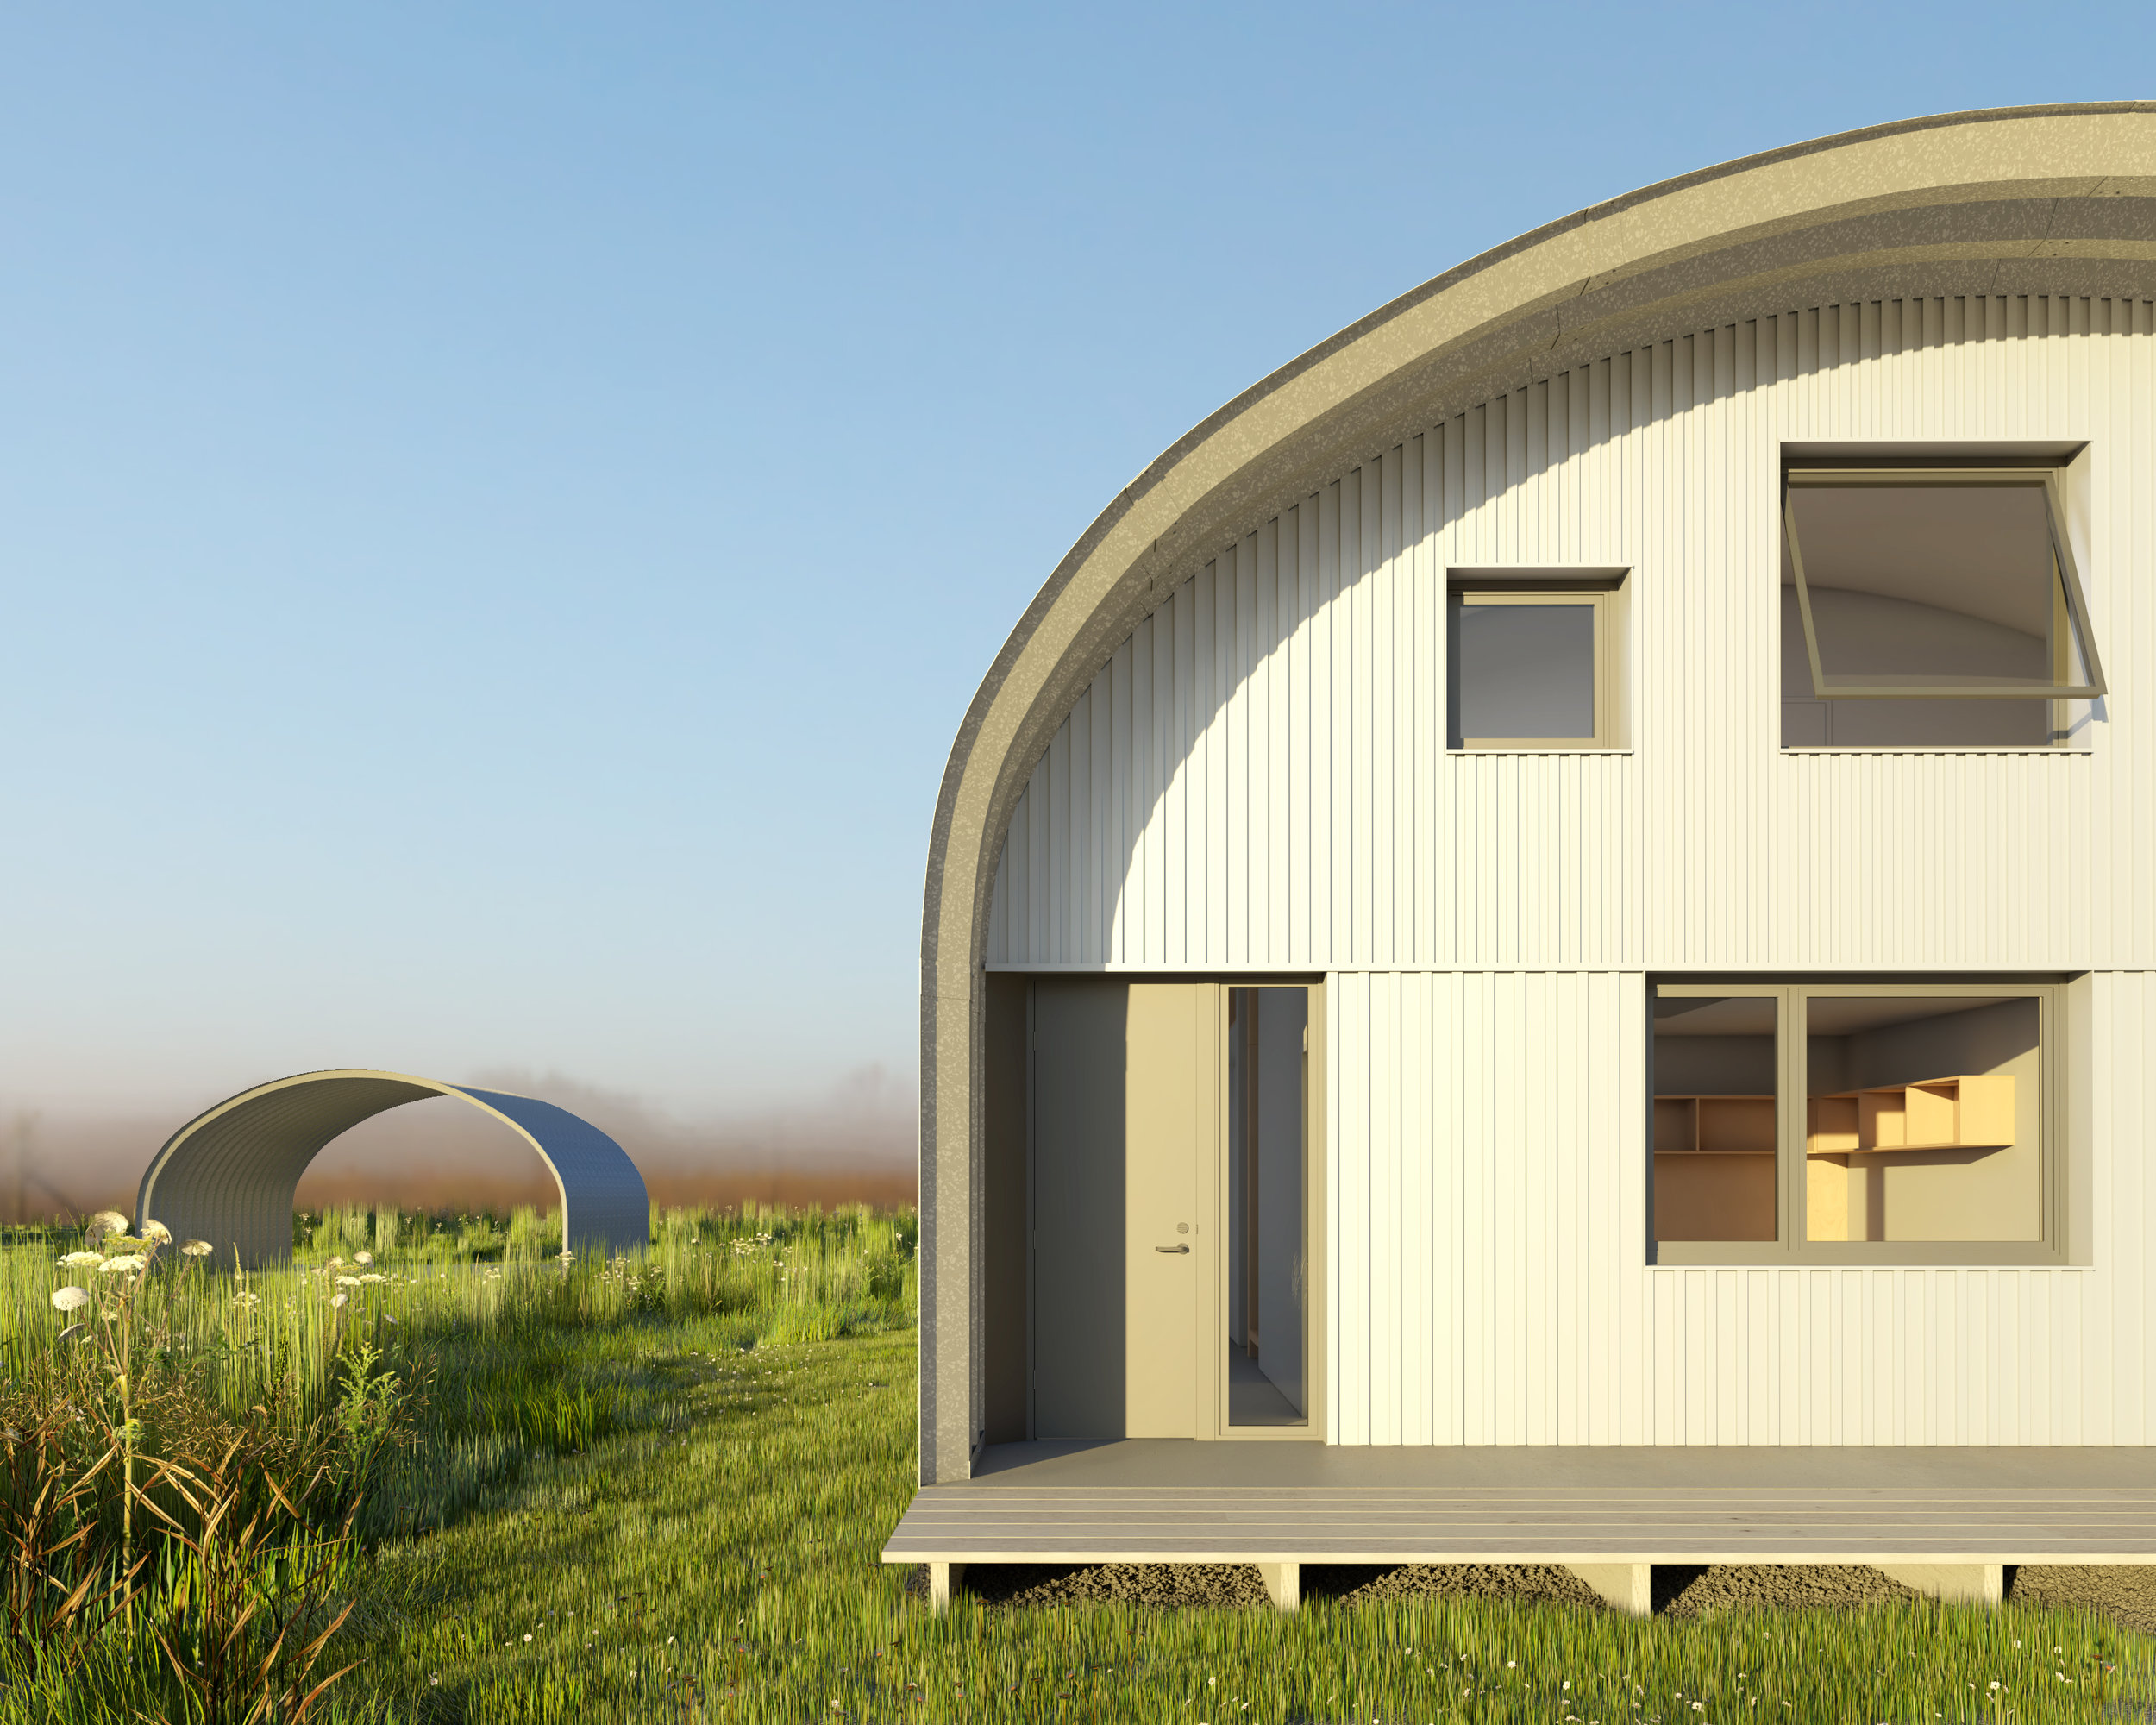 Quonset Hut Home - Exterior View